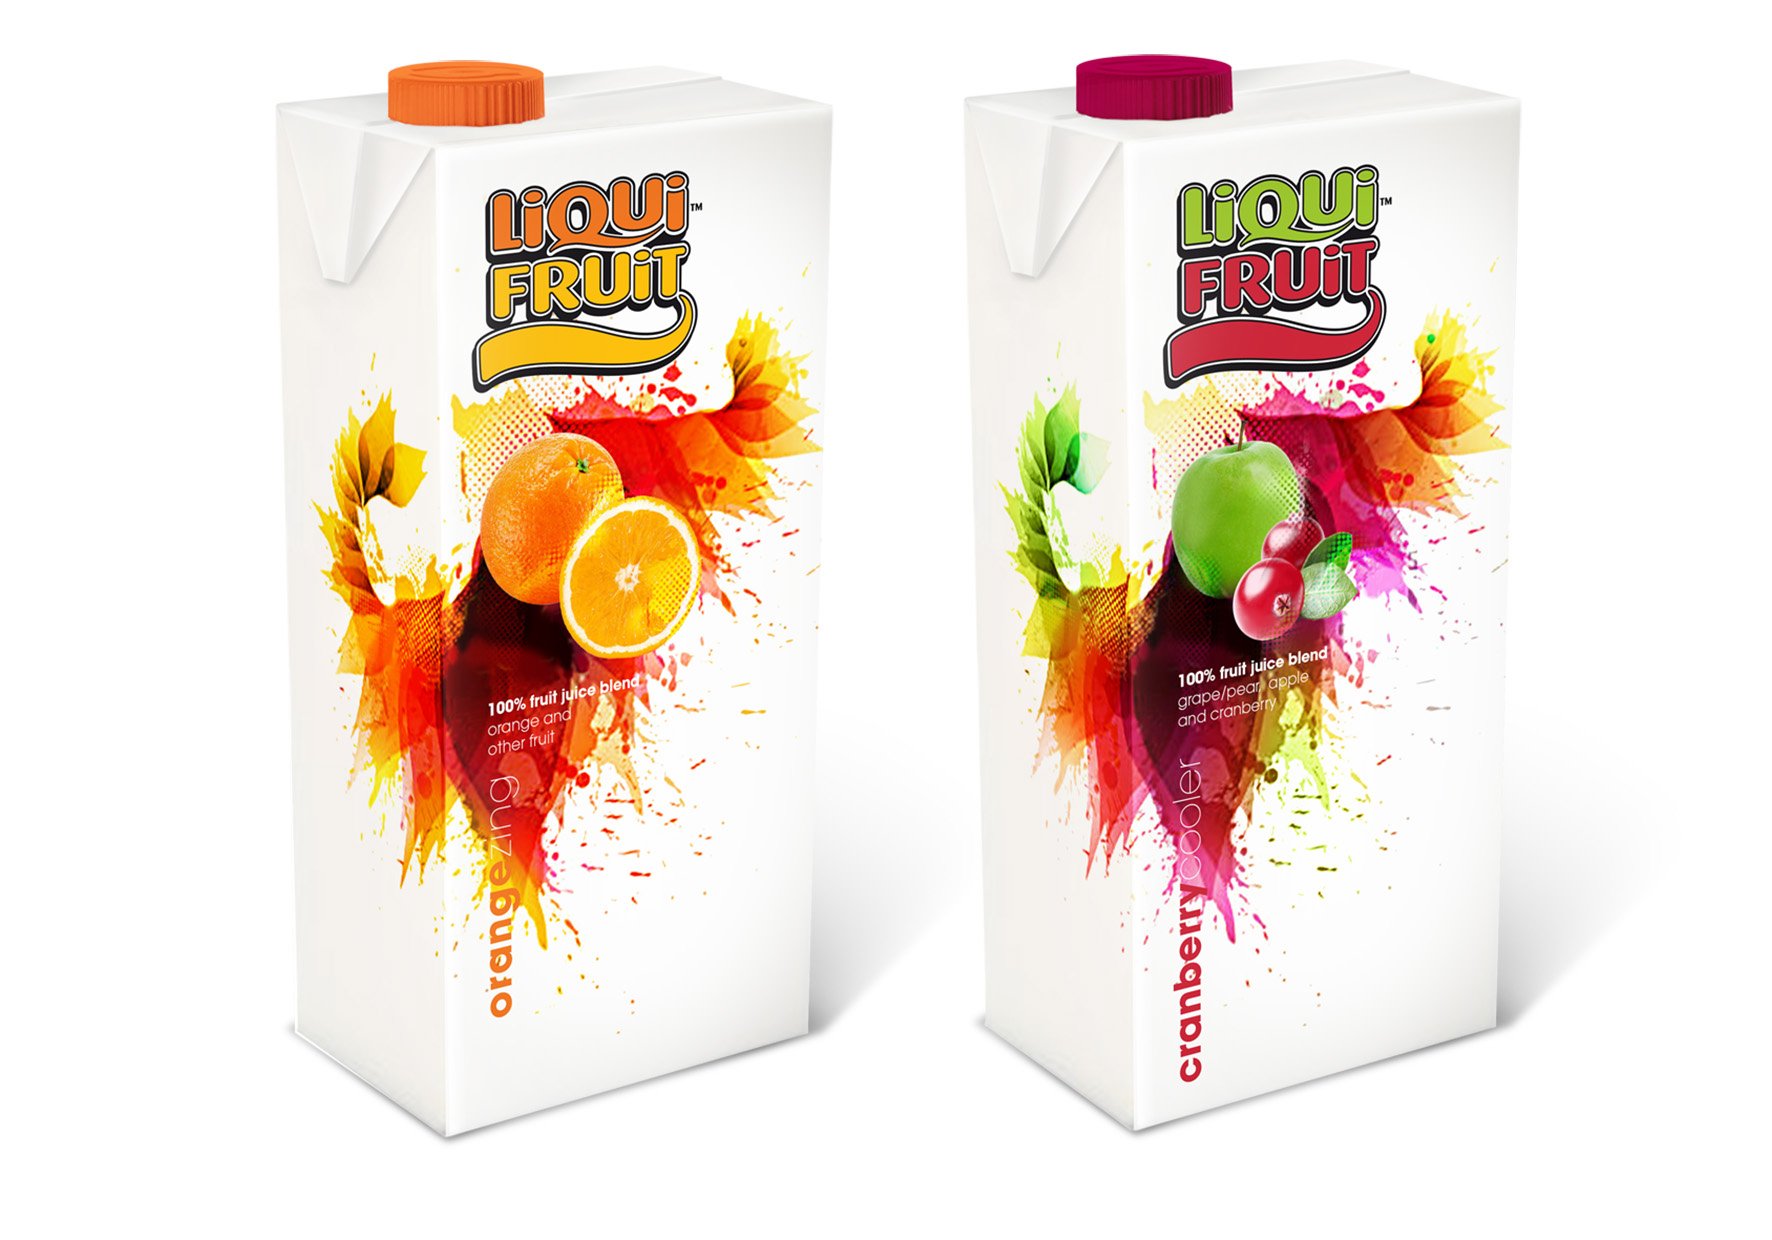 Liquifruit Pack Design